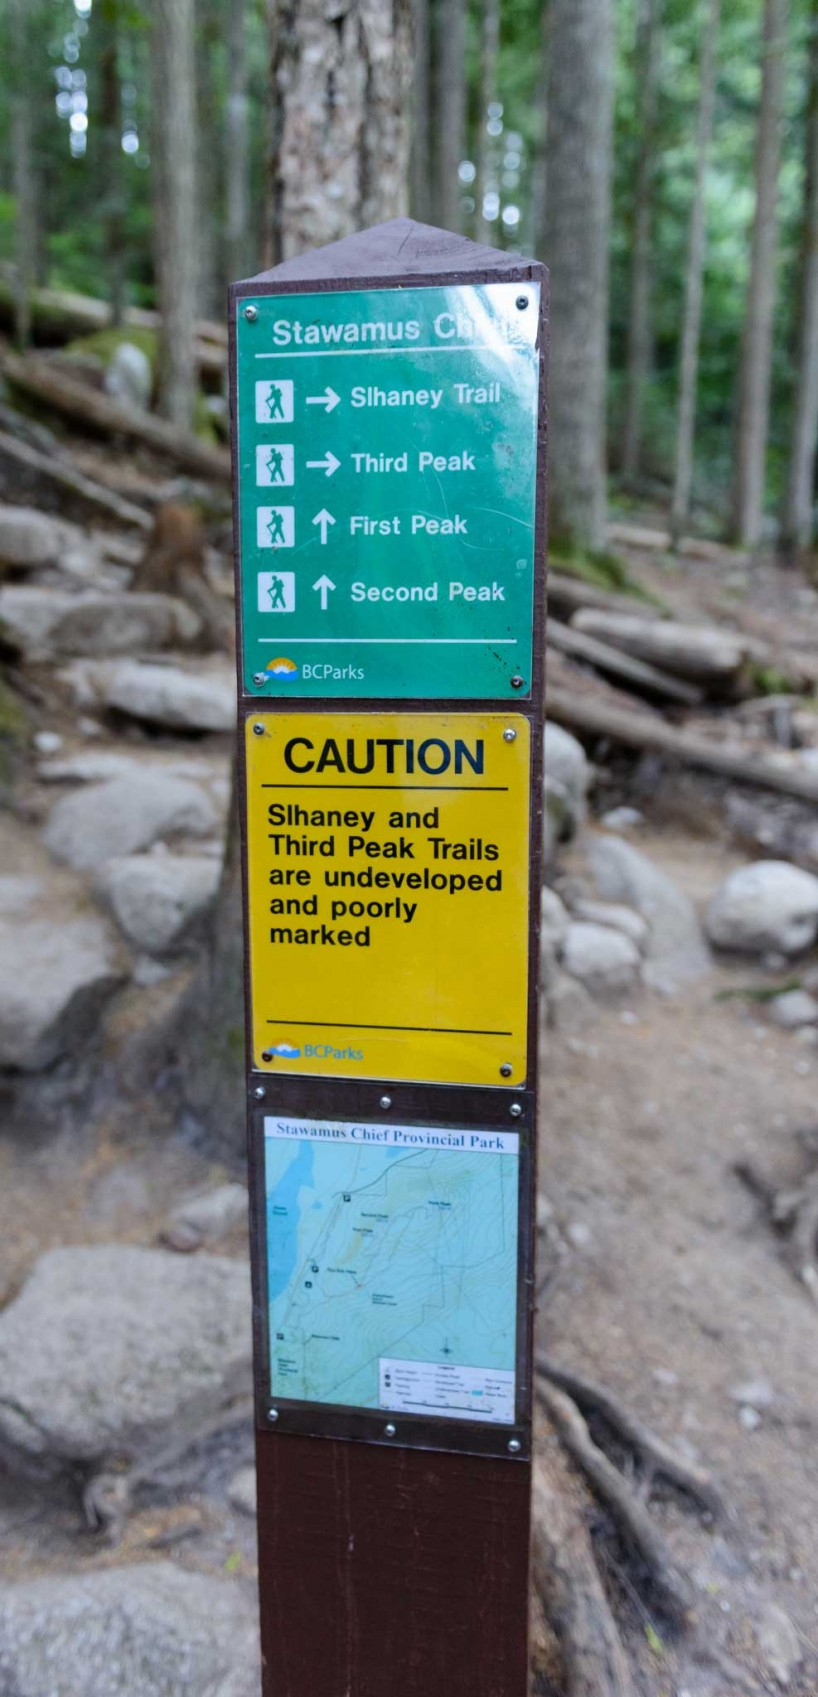 Stawamus Chief - South Peak - Squamish BC - 2012-09-13 : Trail sign